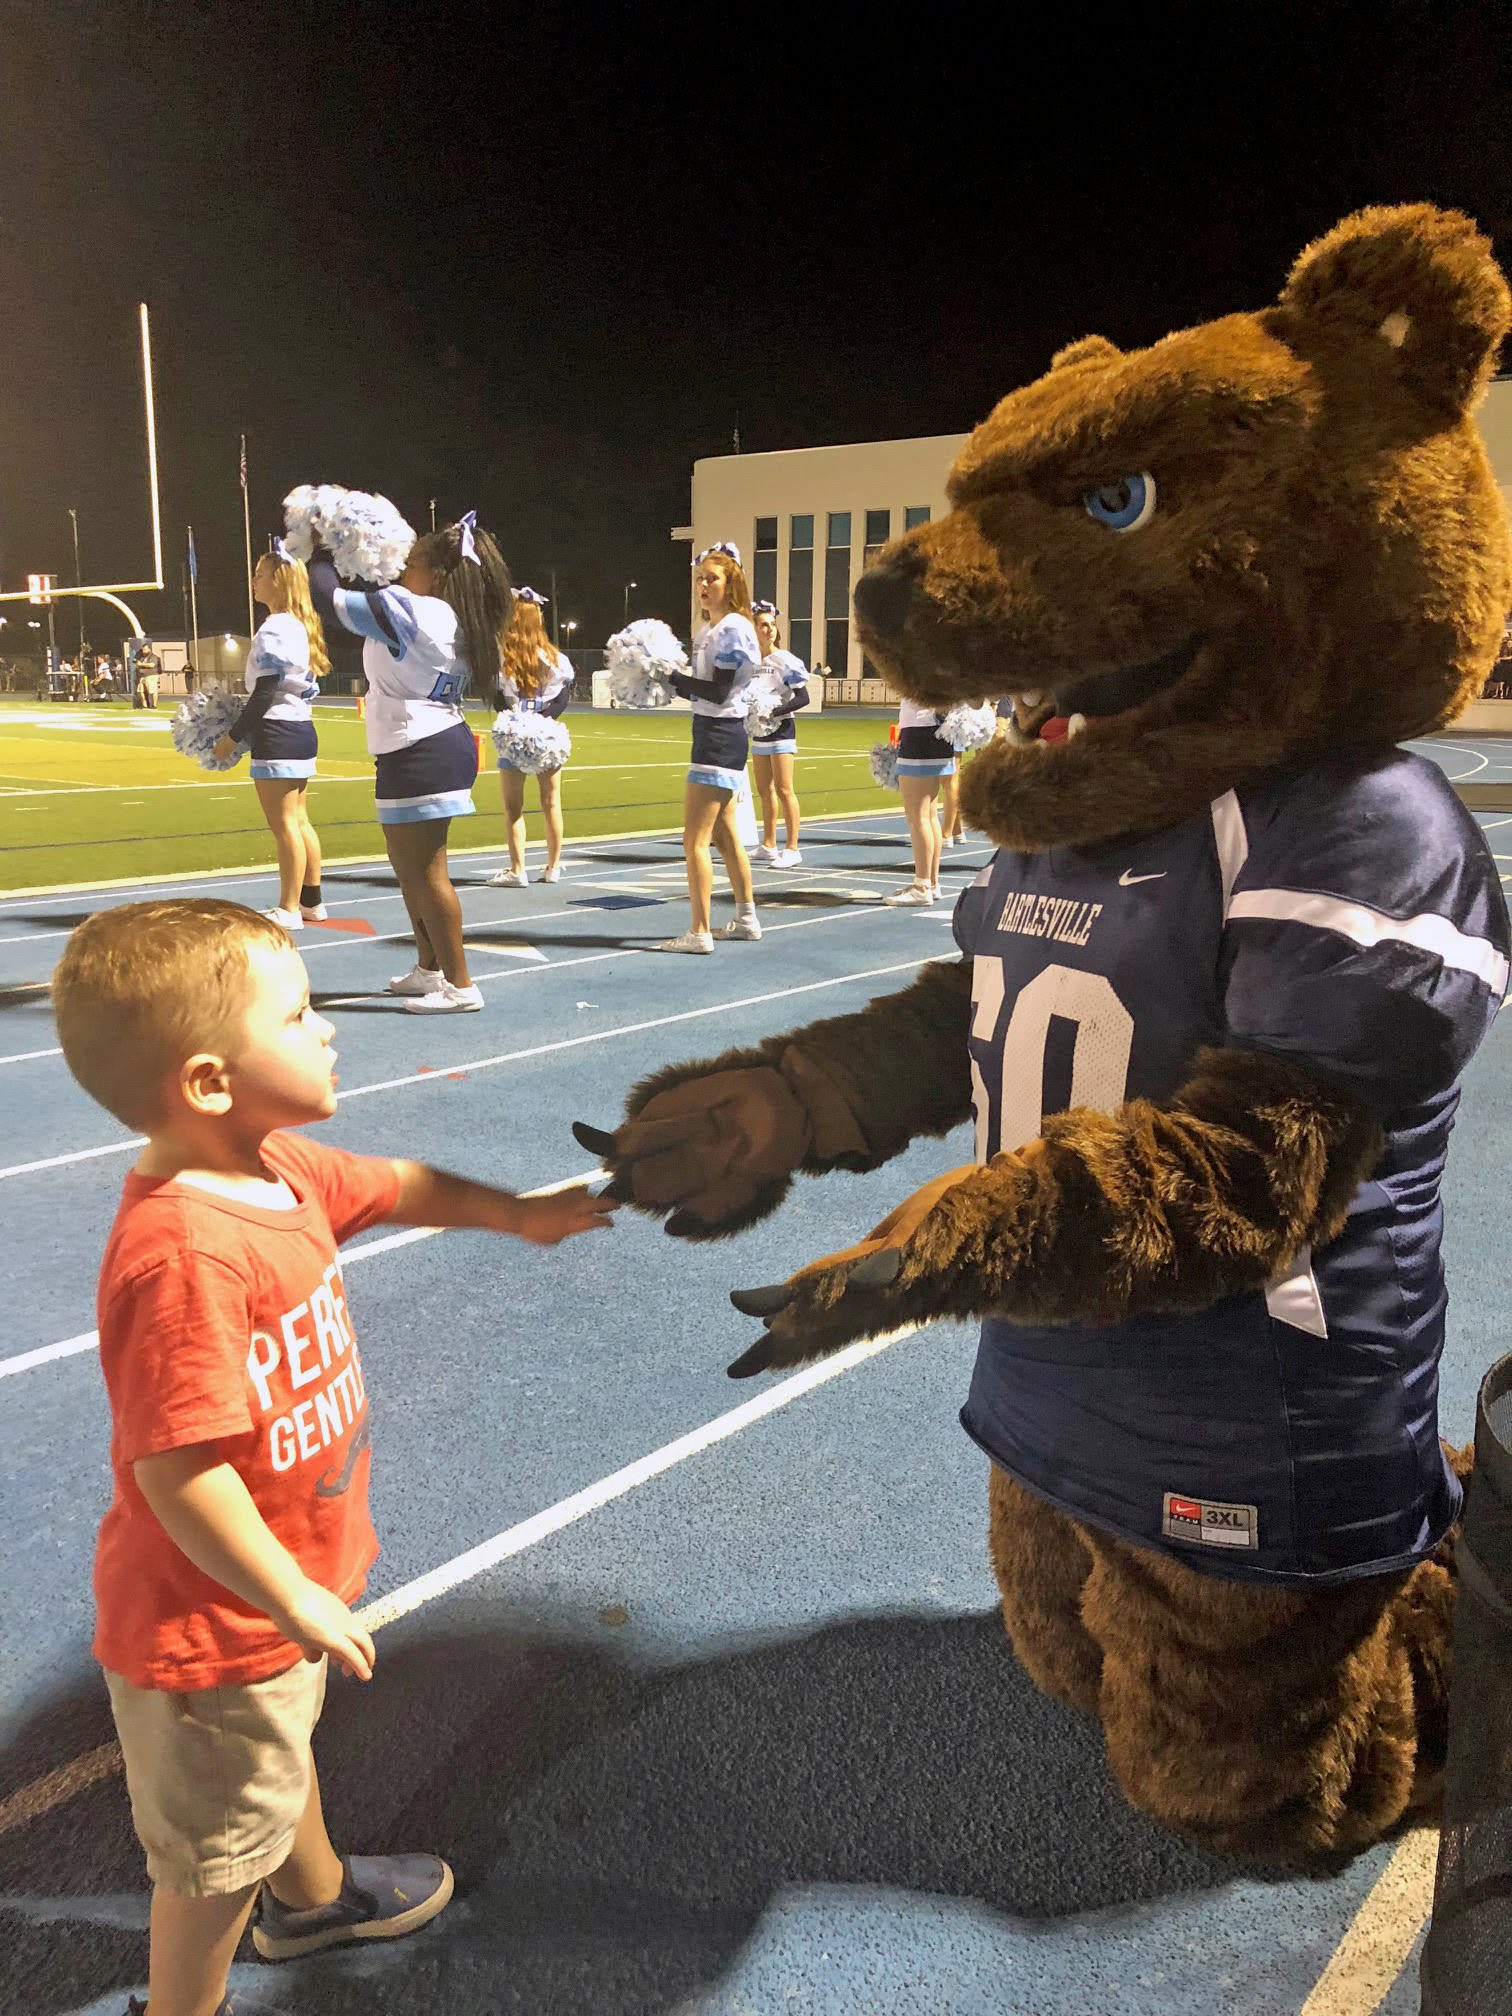 Bruiser the Bruin and friend